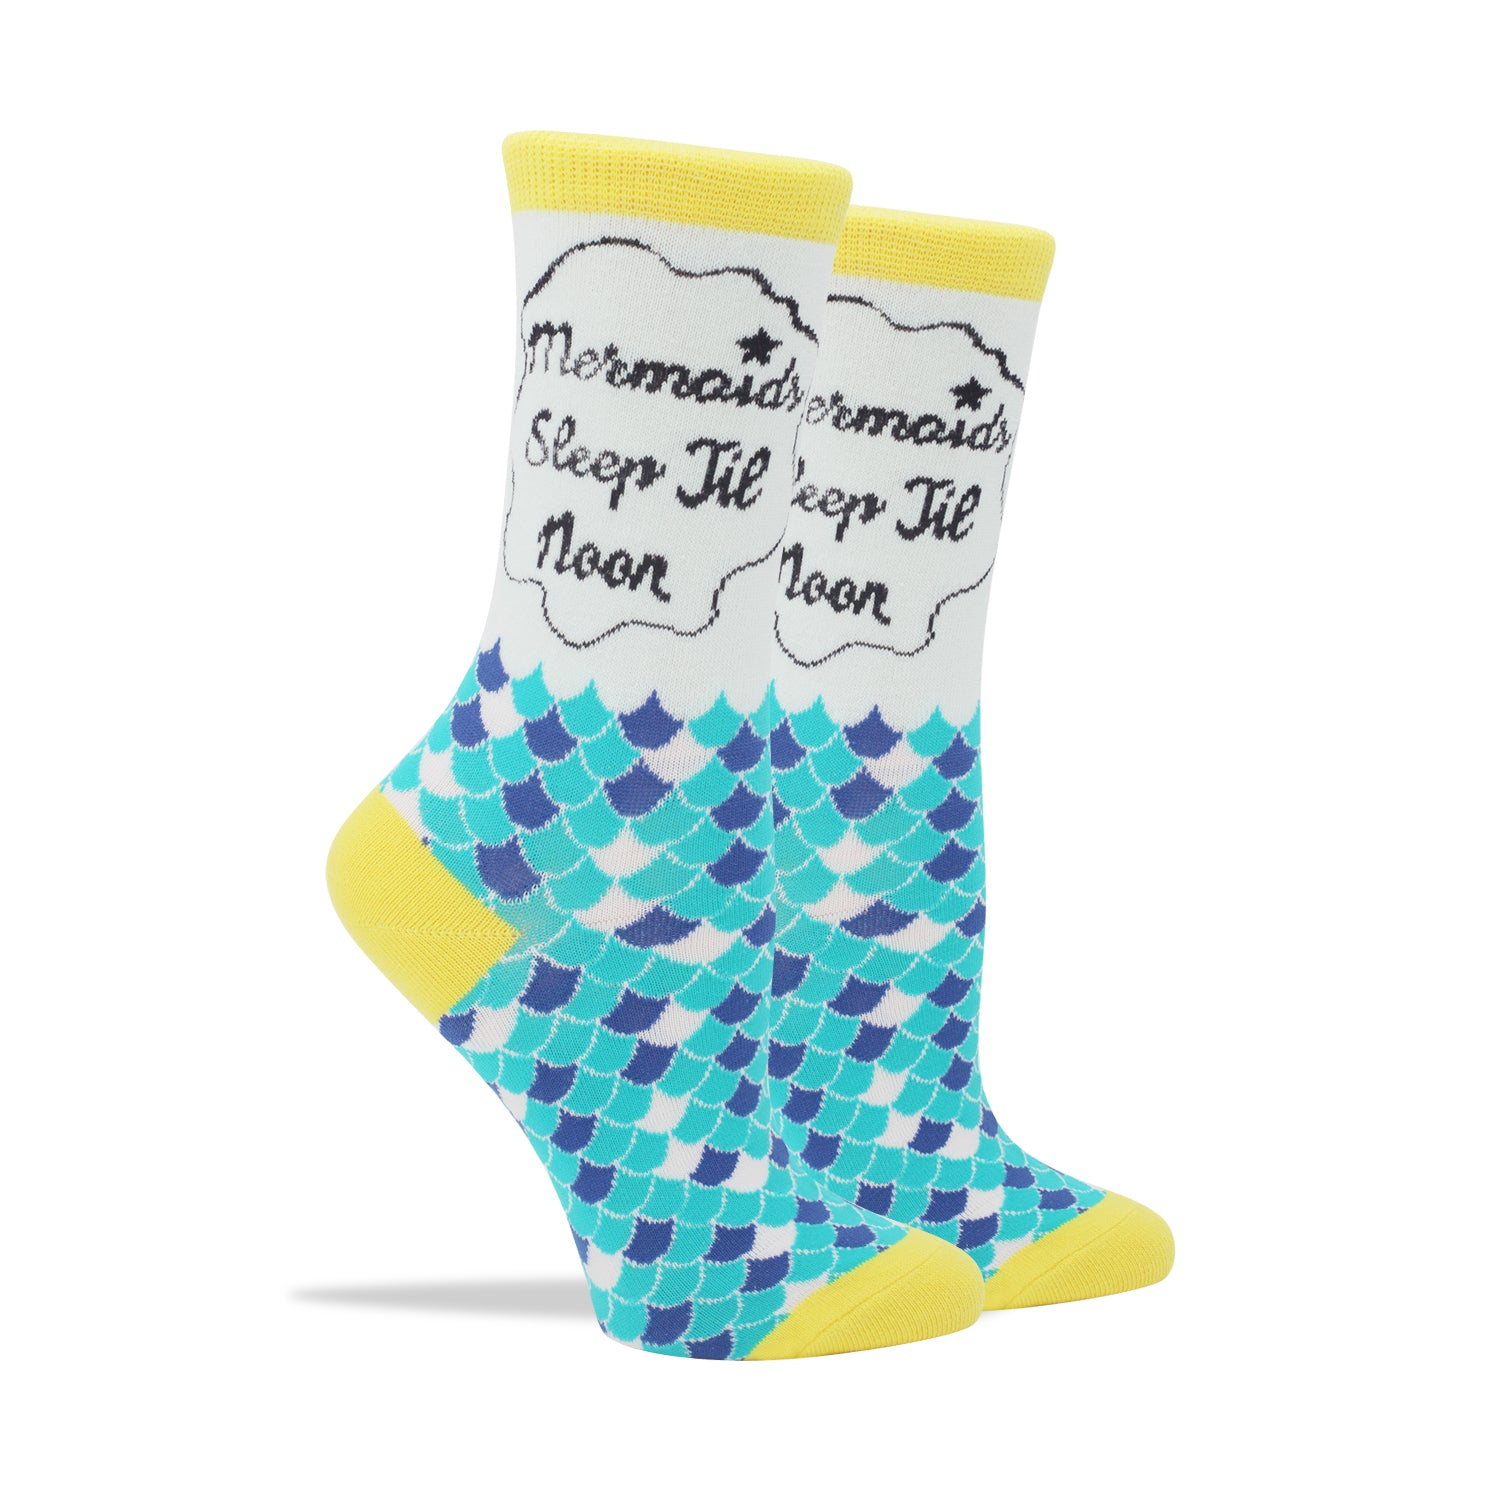 Mermaids Sleep Till Noon Women's Socks